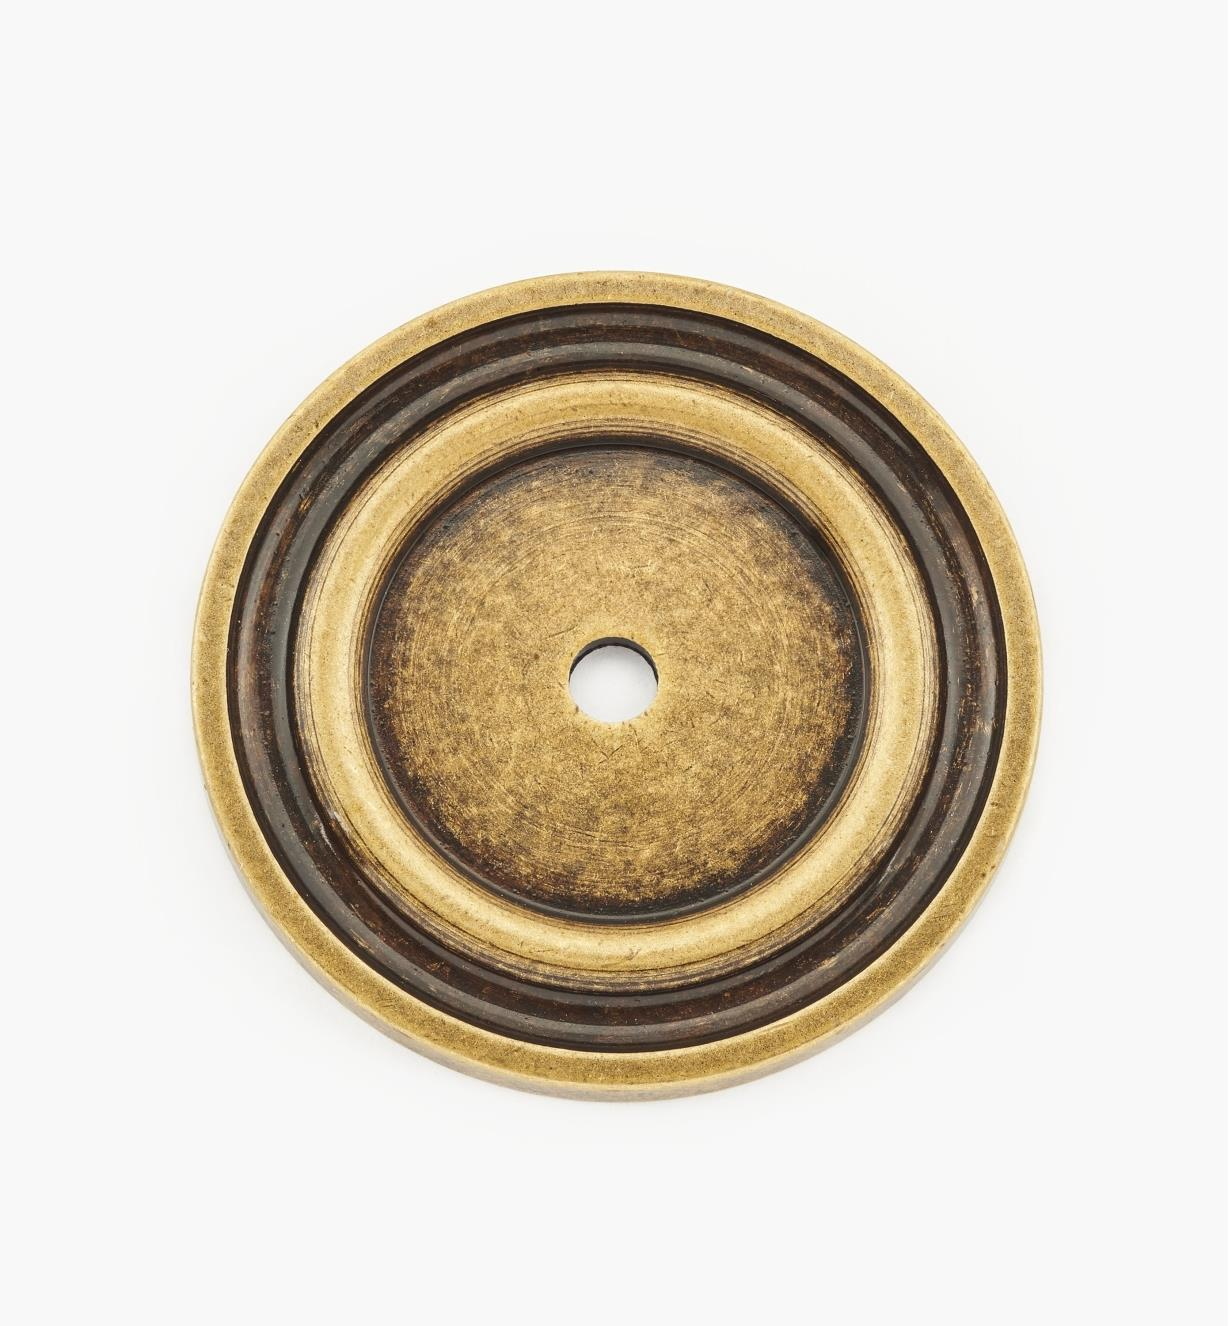 01A0740 - 40mm Antique Brass Knob Escutcheon